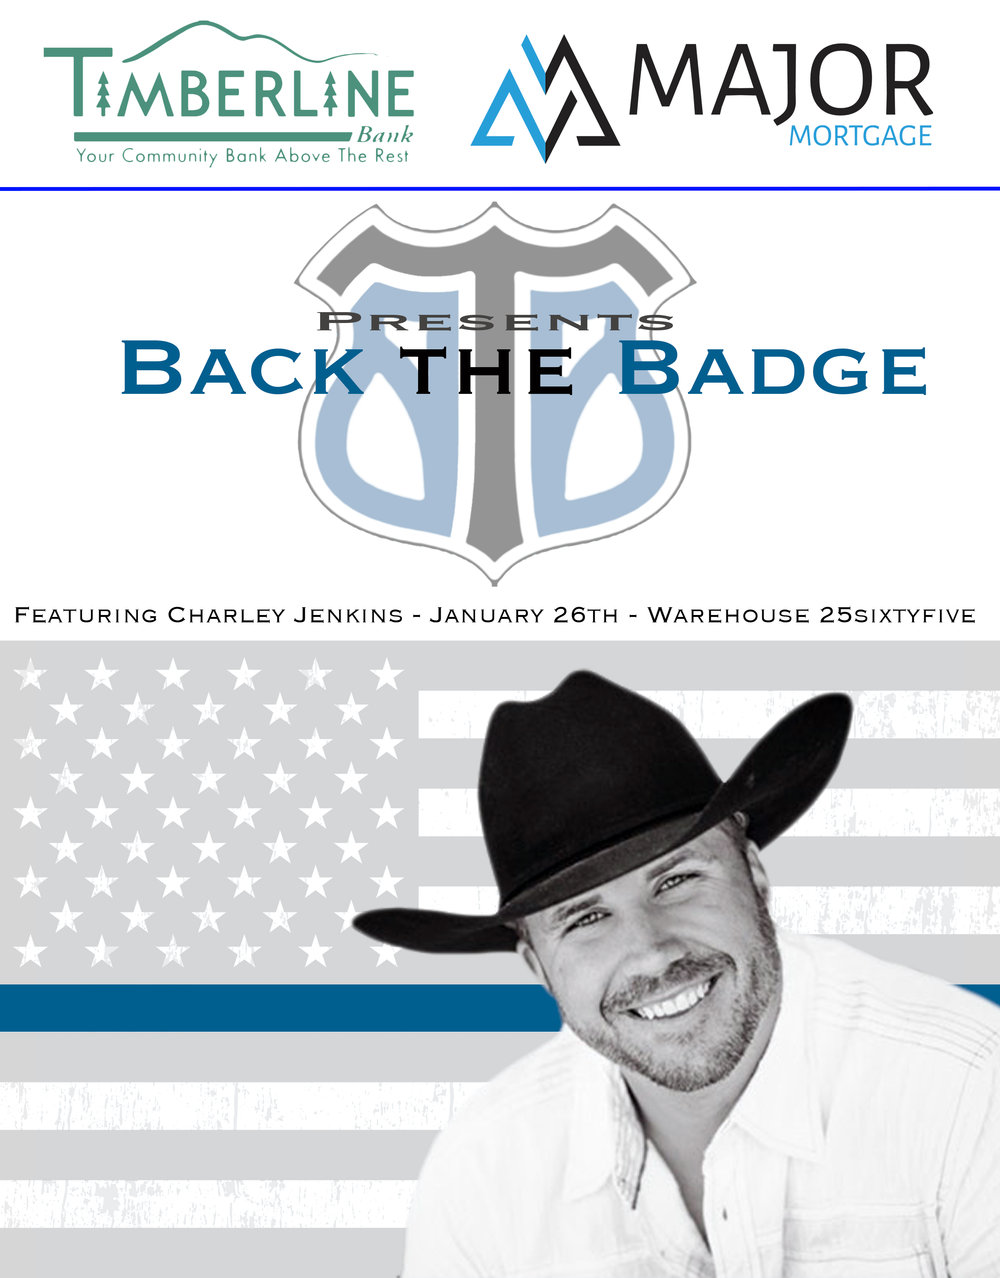 Back the Badge Grand Junction is set to for another great fundraiser for a great cause! Get your tickets today!  3 Bands, Great Food all for a GREAT CAUSE!